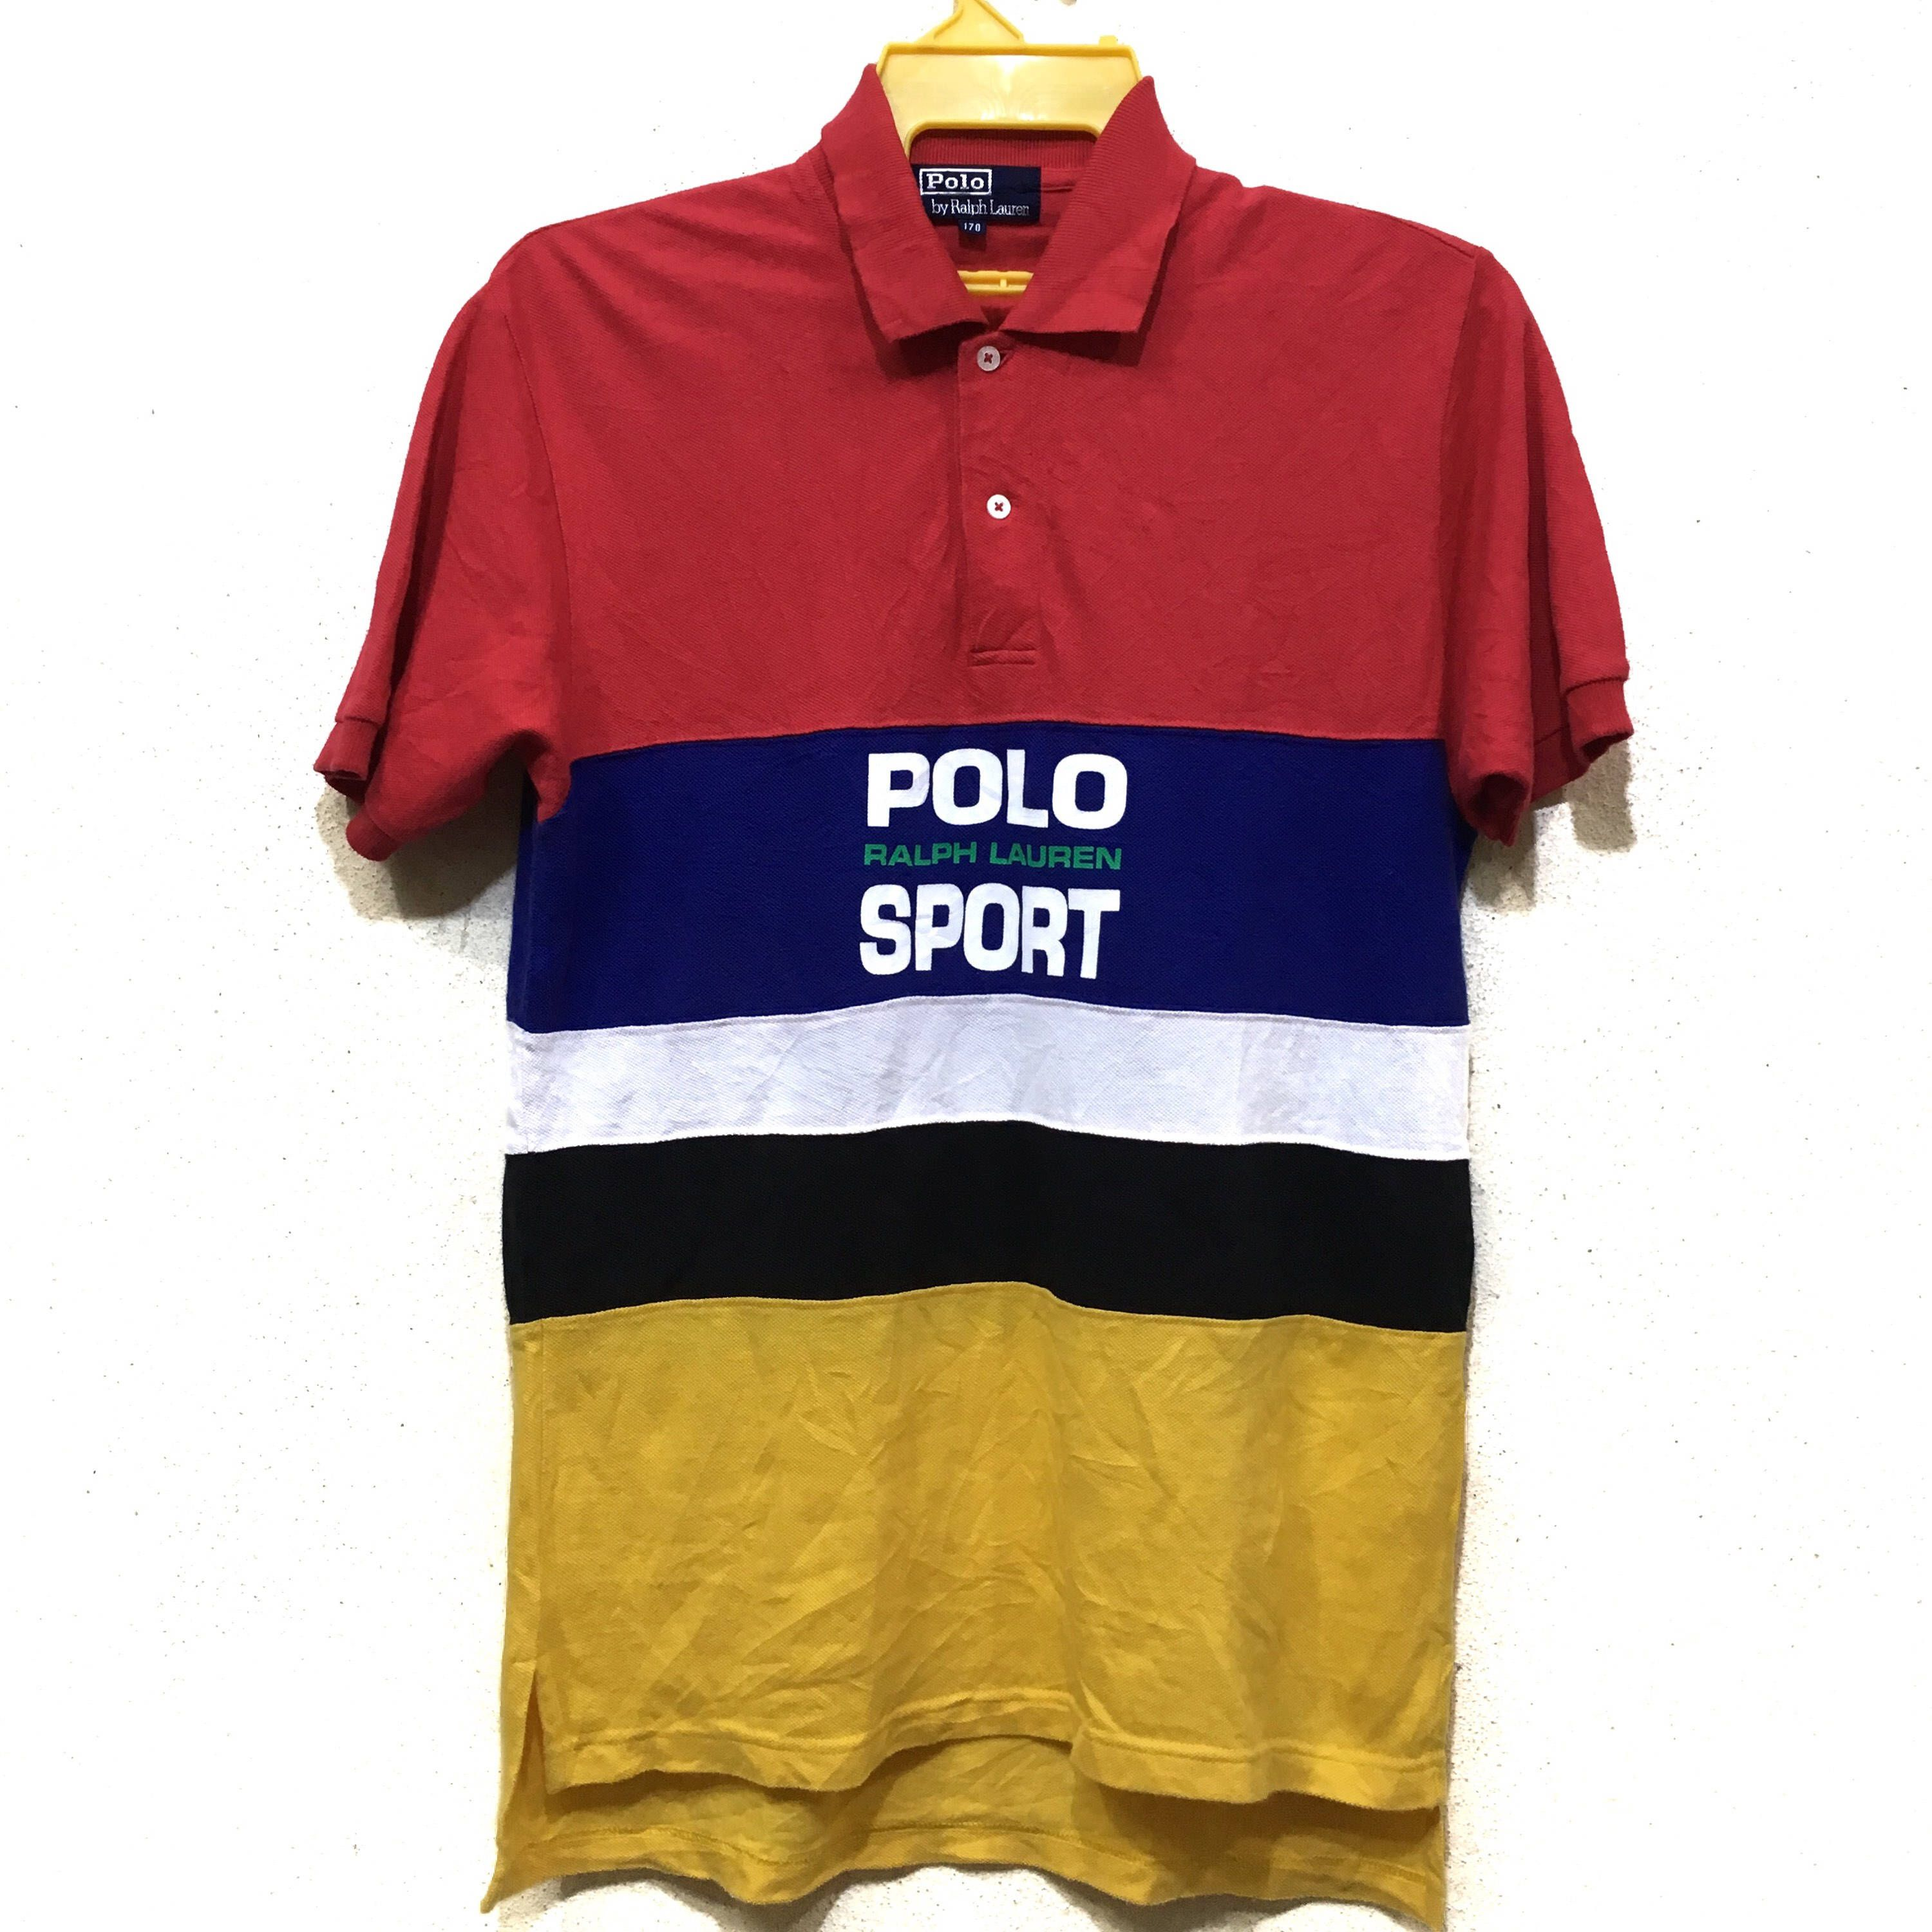 cda417a0862 Polo Sport by Ralph Lauren polo shirt M size   For sell   Polo ralph ...